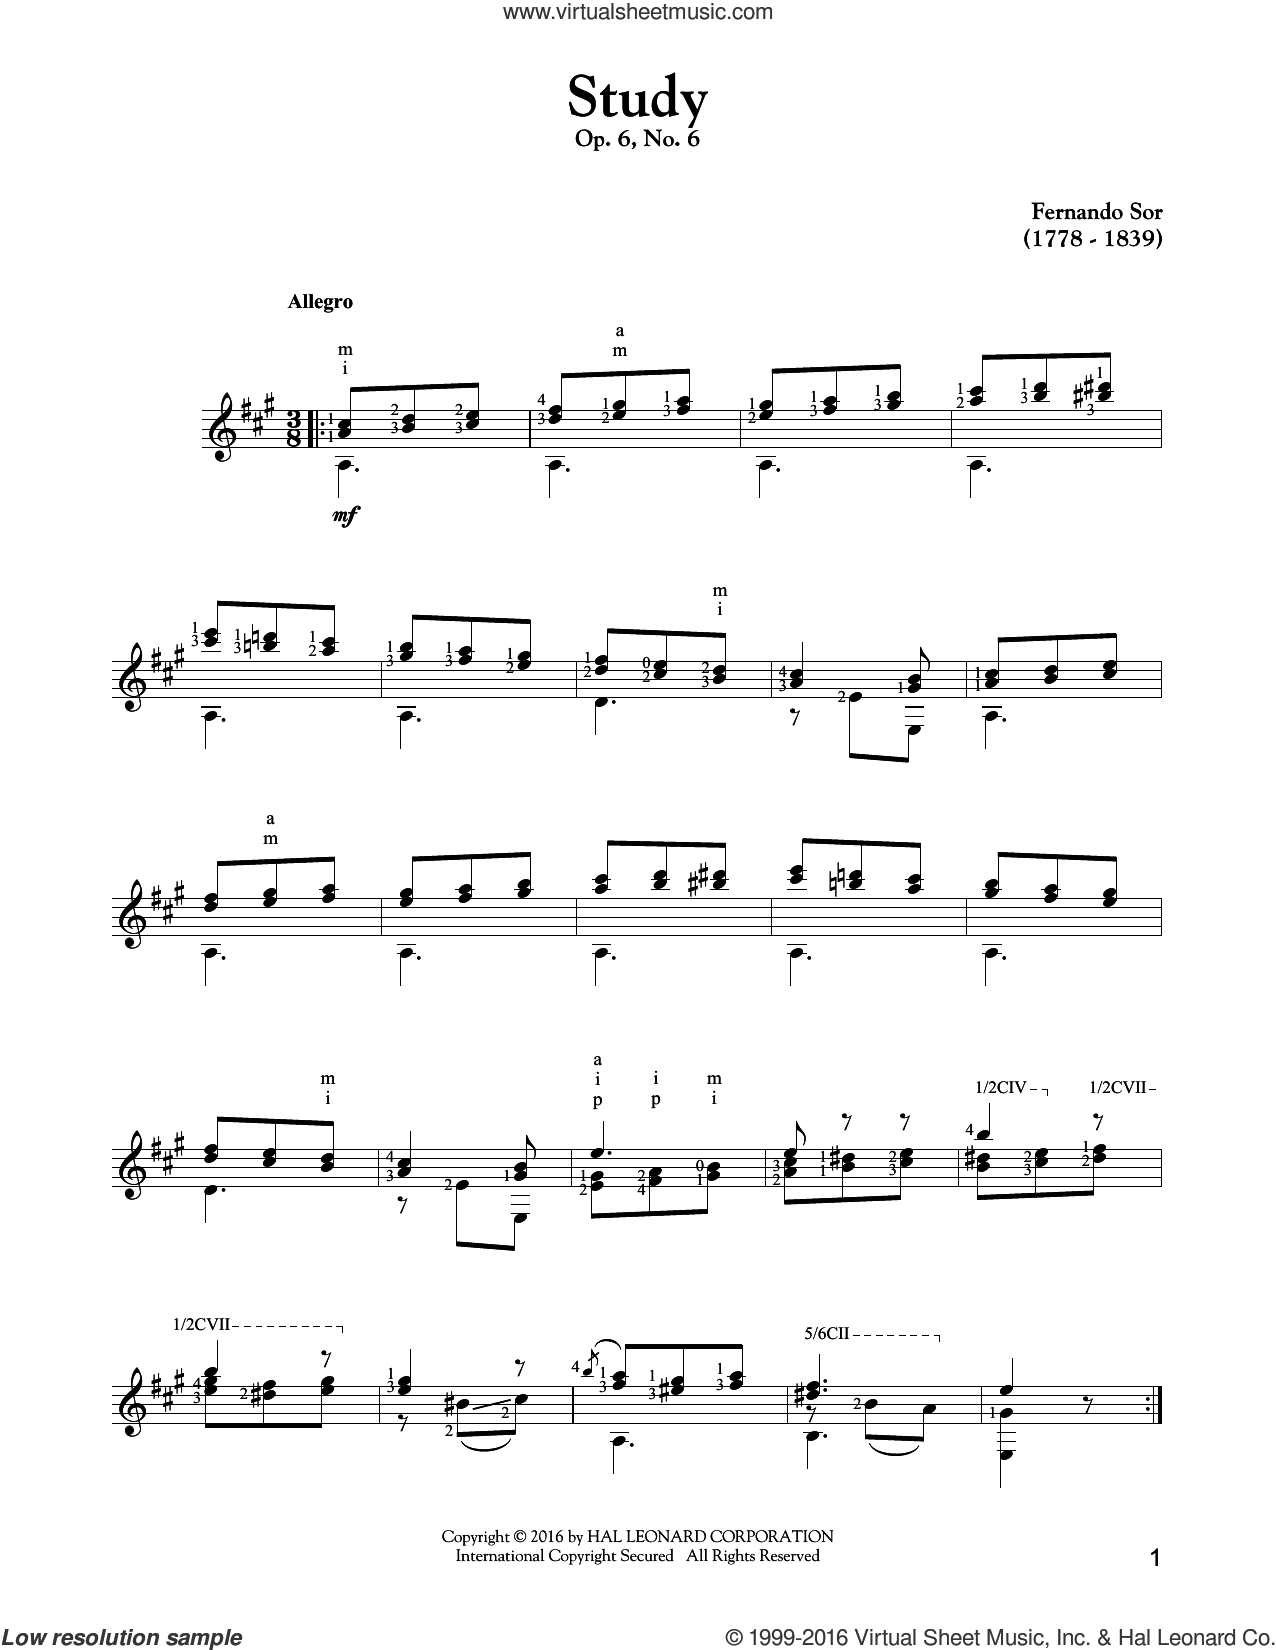 Study Op. 6, No. 6 sheet music for guitar solo by Fernando Sor